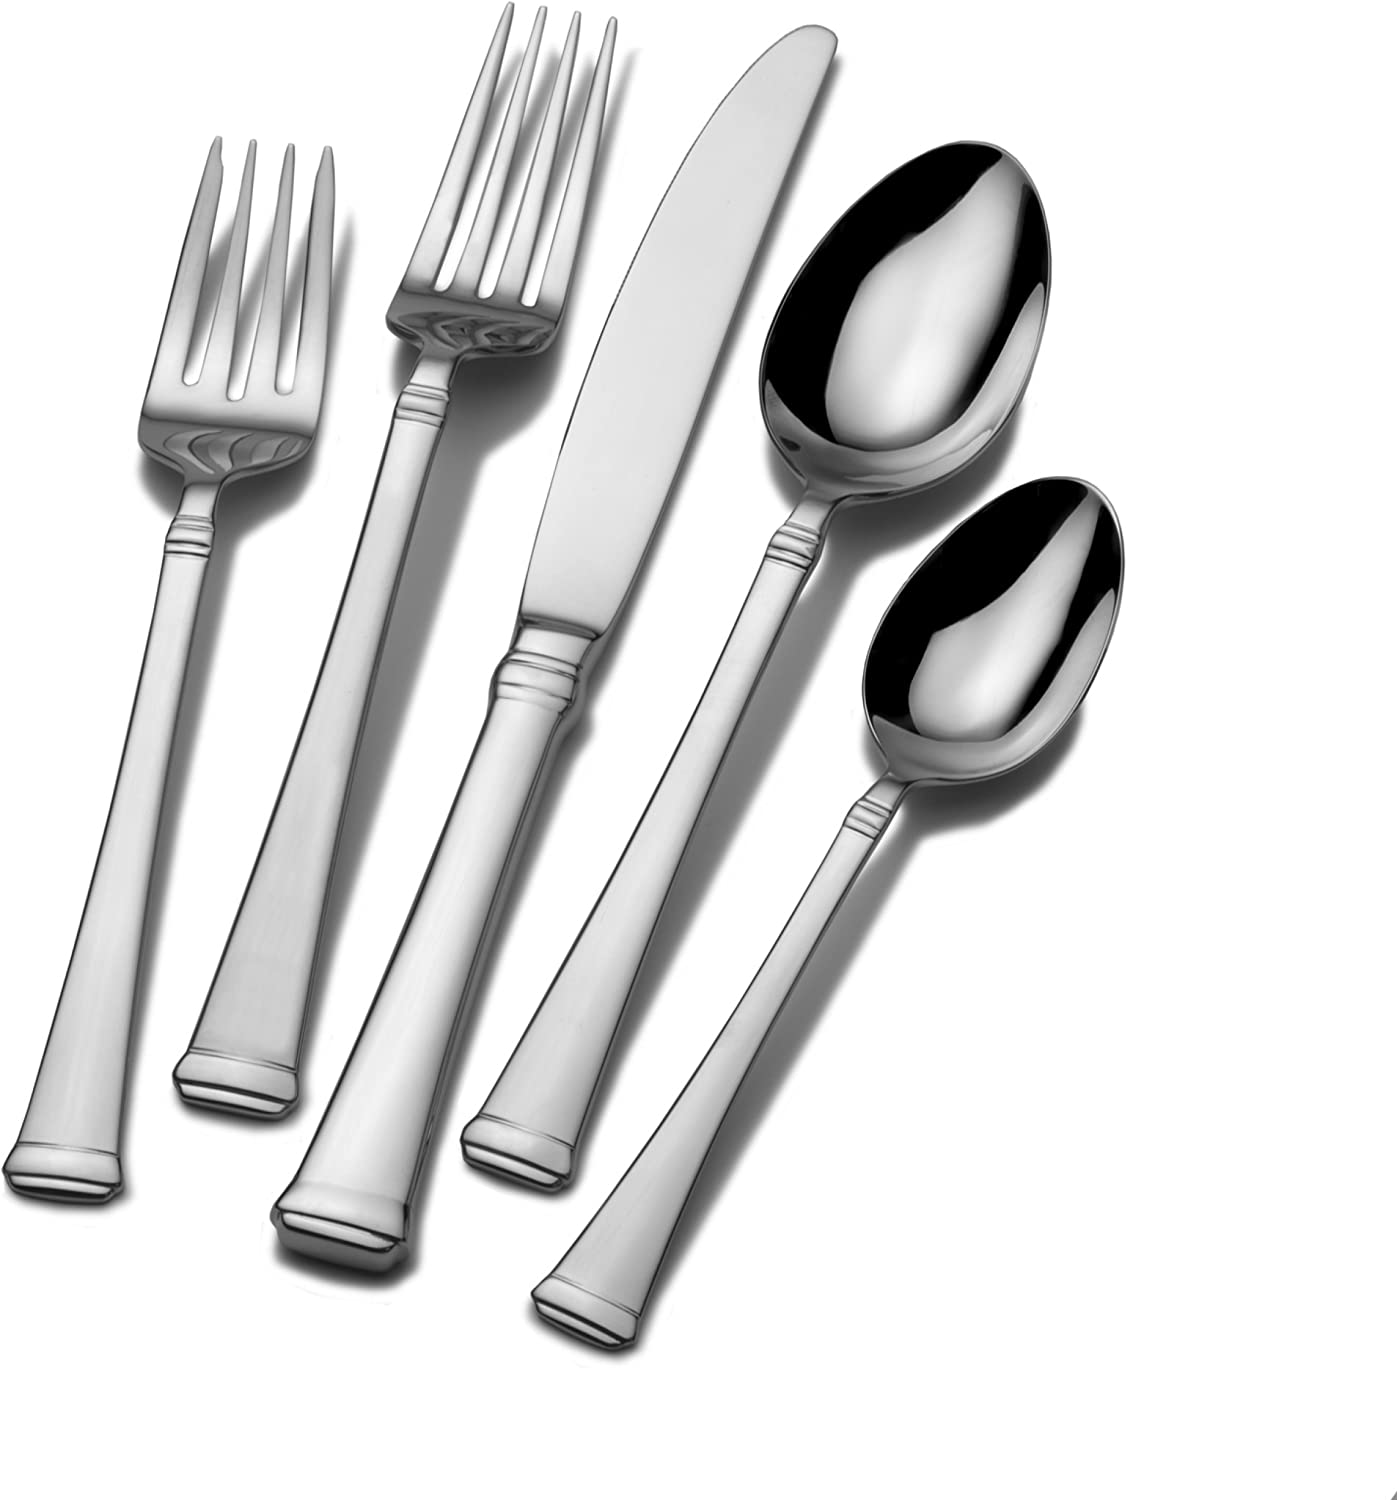 Mikasa Harmony 45-Piece 18/10 Stainless Steel Flatware Set with Serving Utensil Set, Service for 8